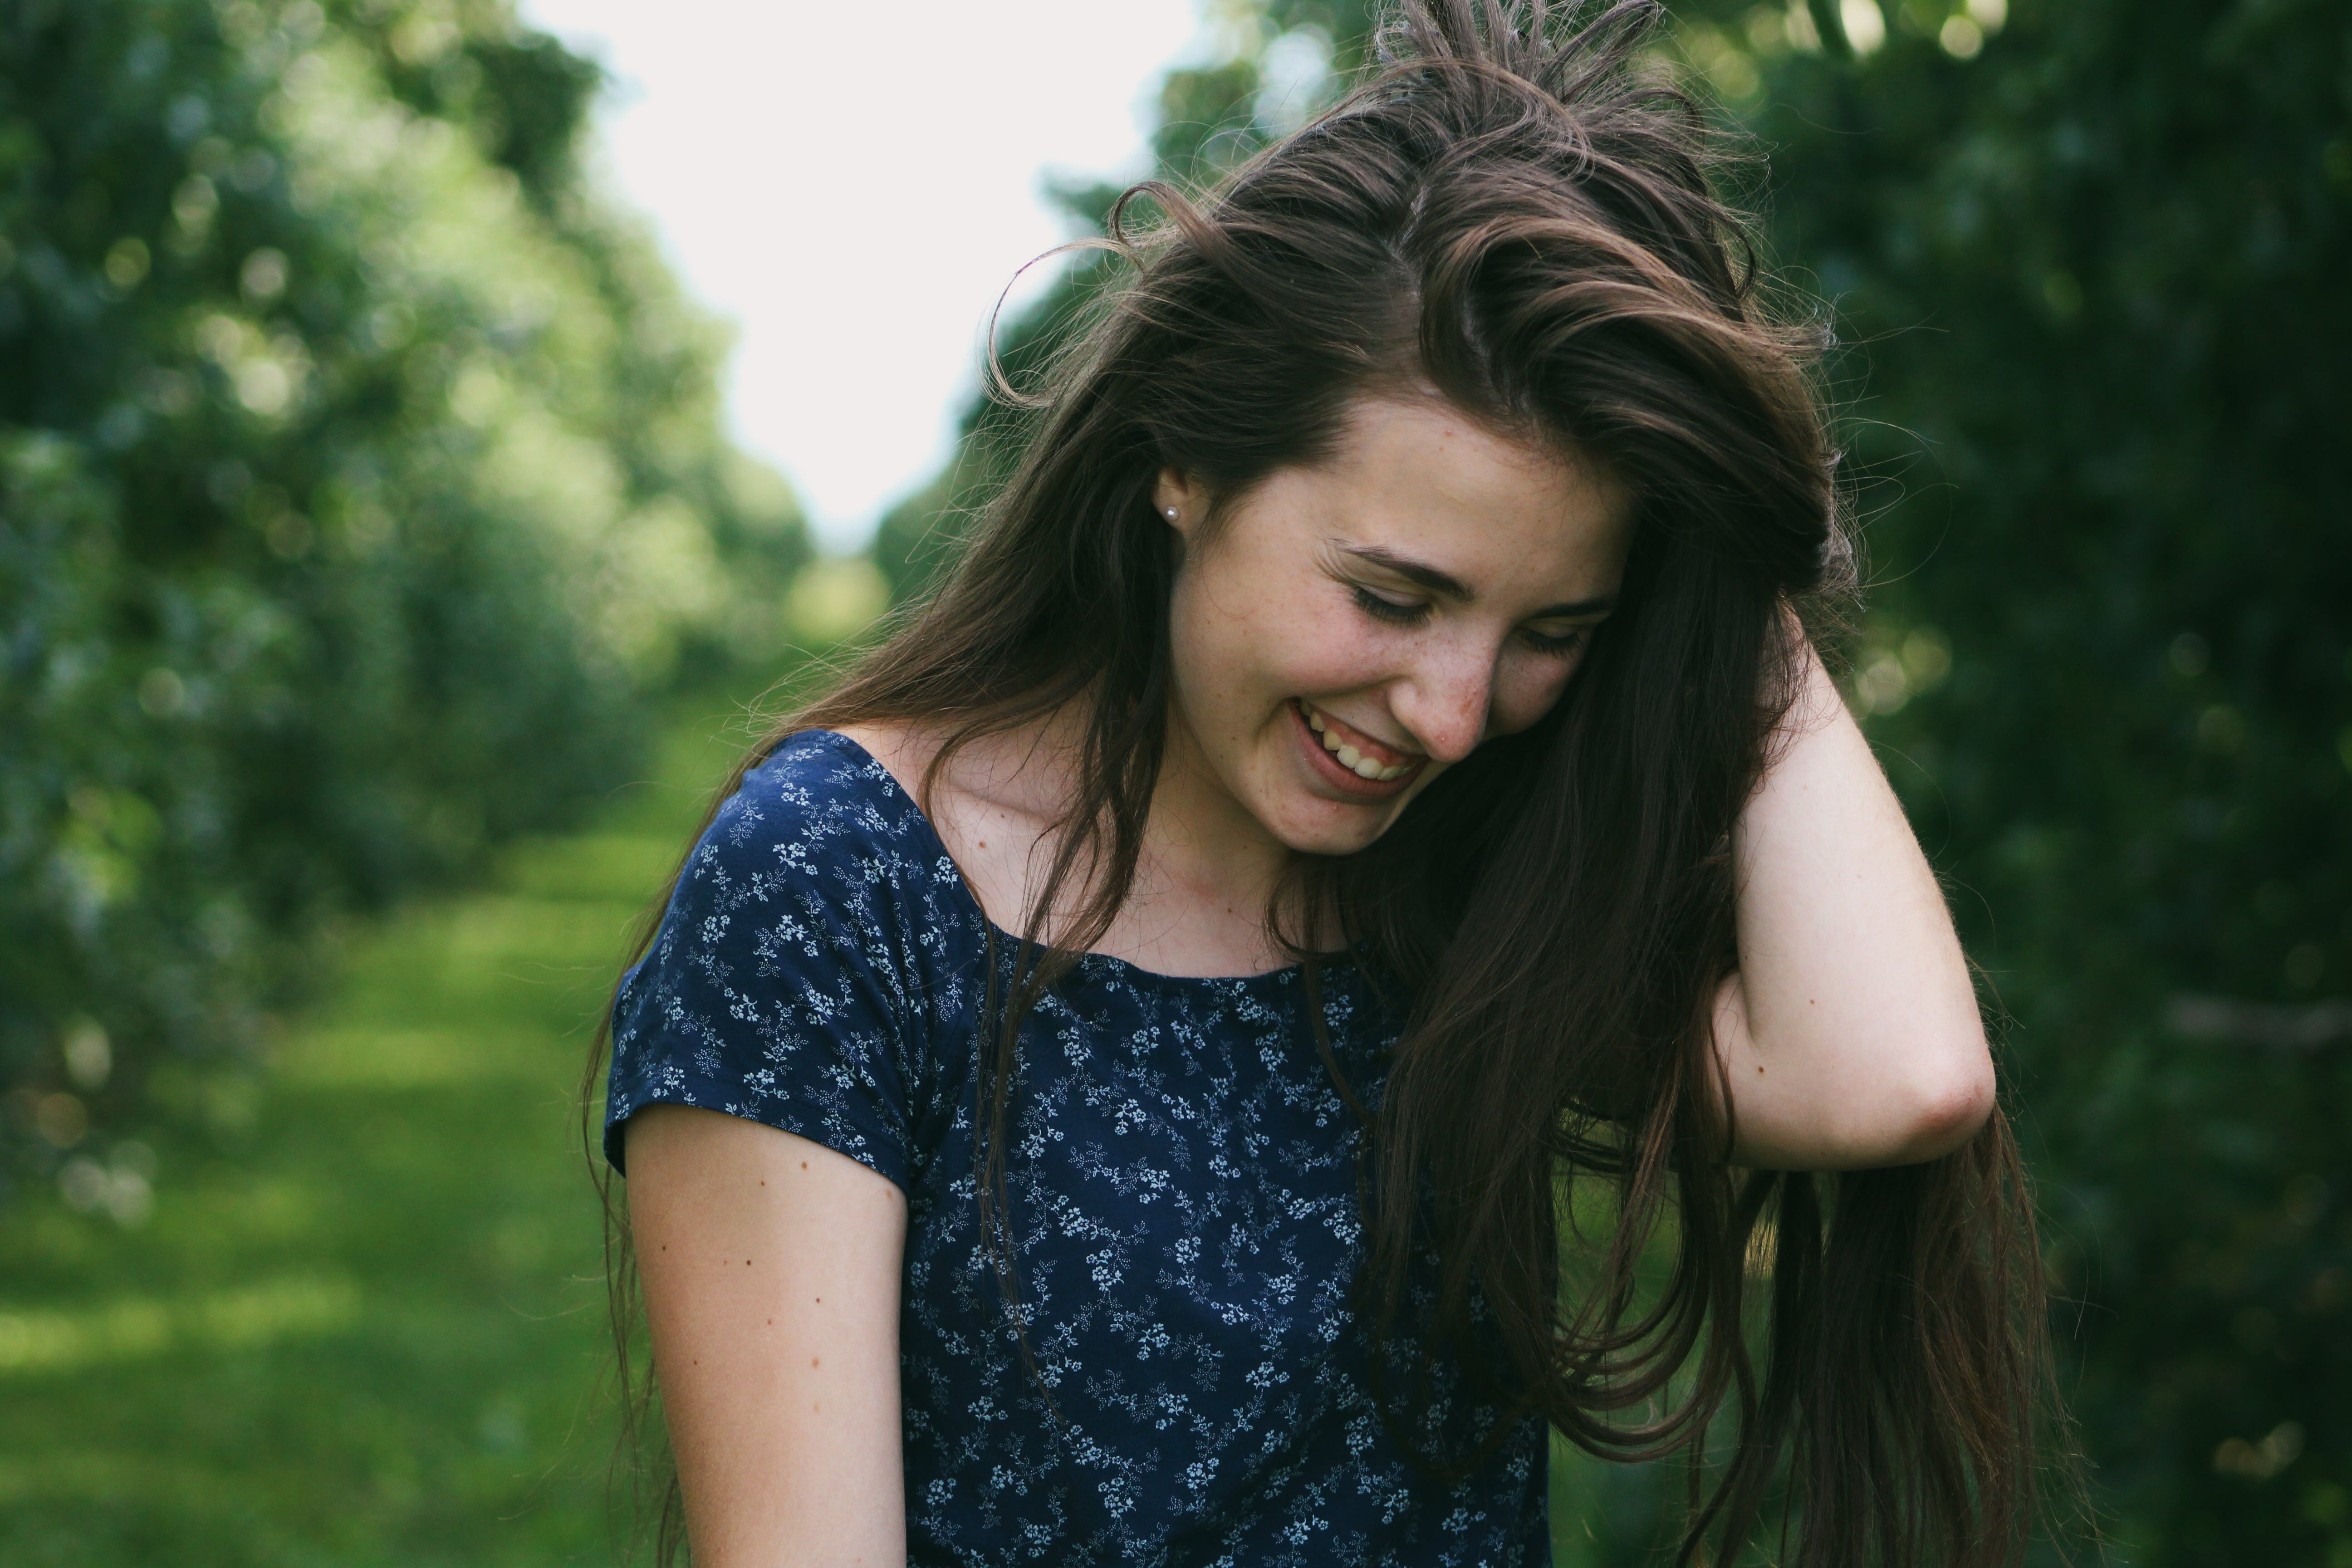 Photo of a Woman Holding Her Hair